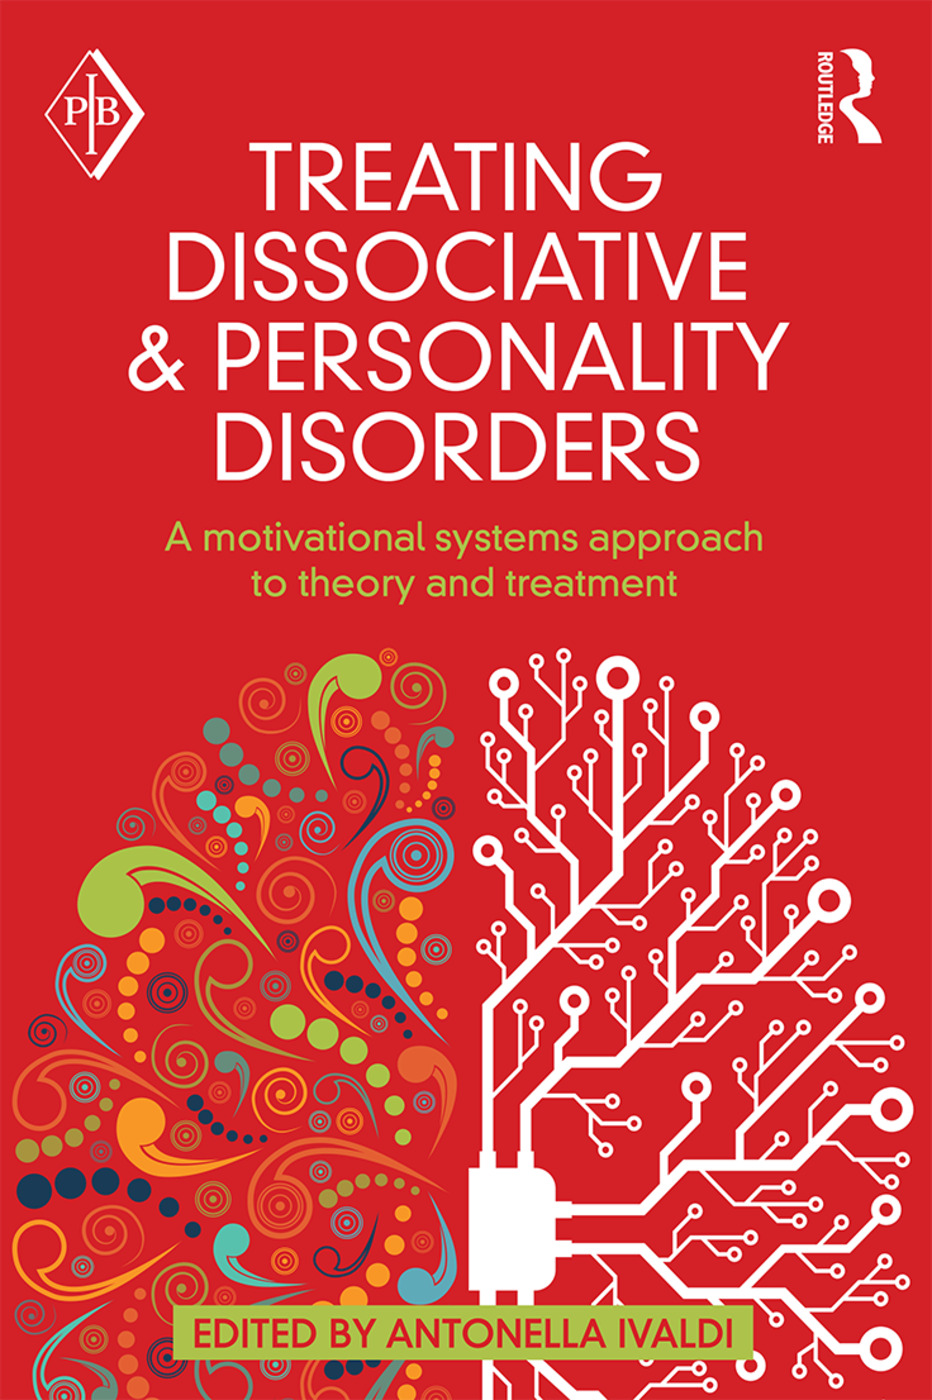 Treating Dissociative and Personality Disorders